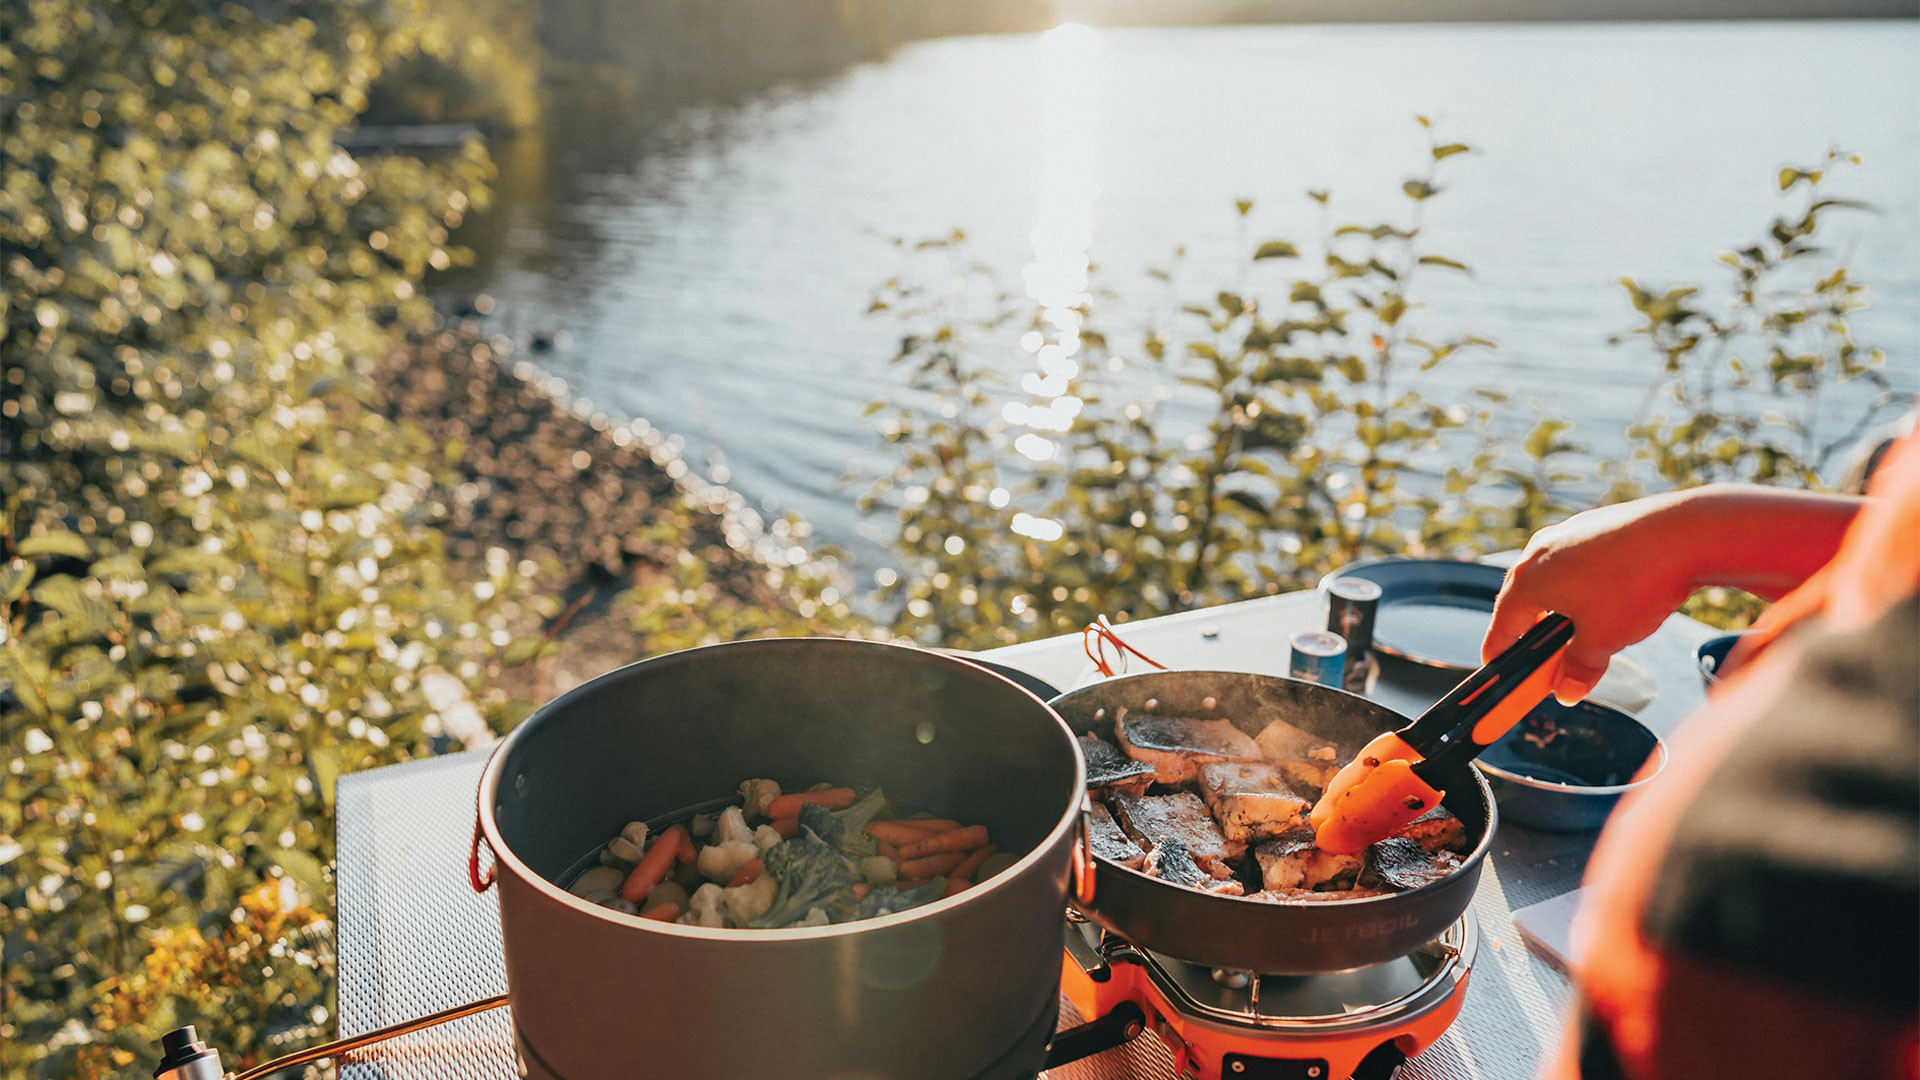 Gears of Travel, Canadian adventure | Outdoor camp cooking near lake